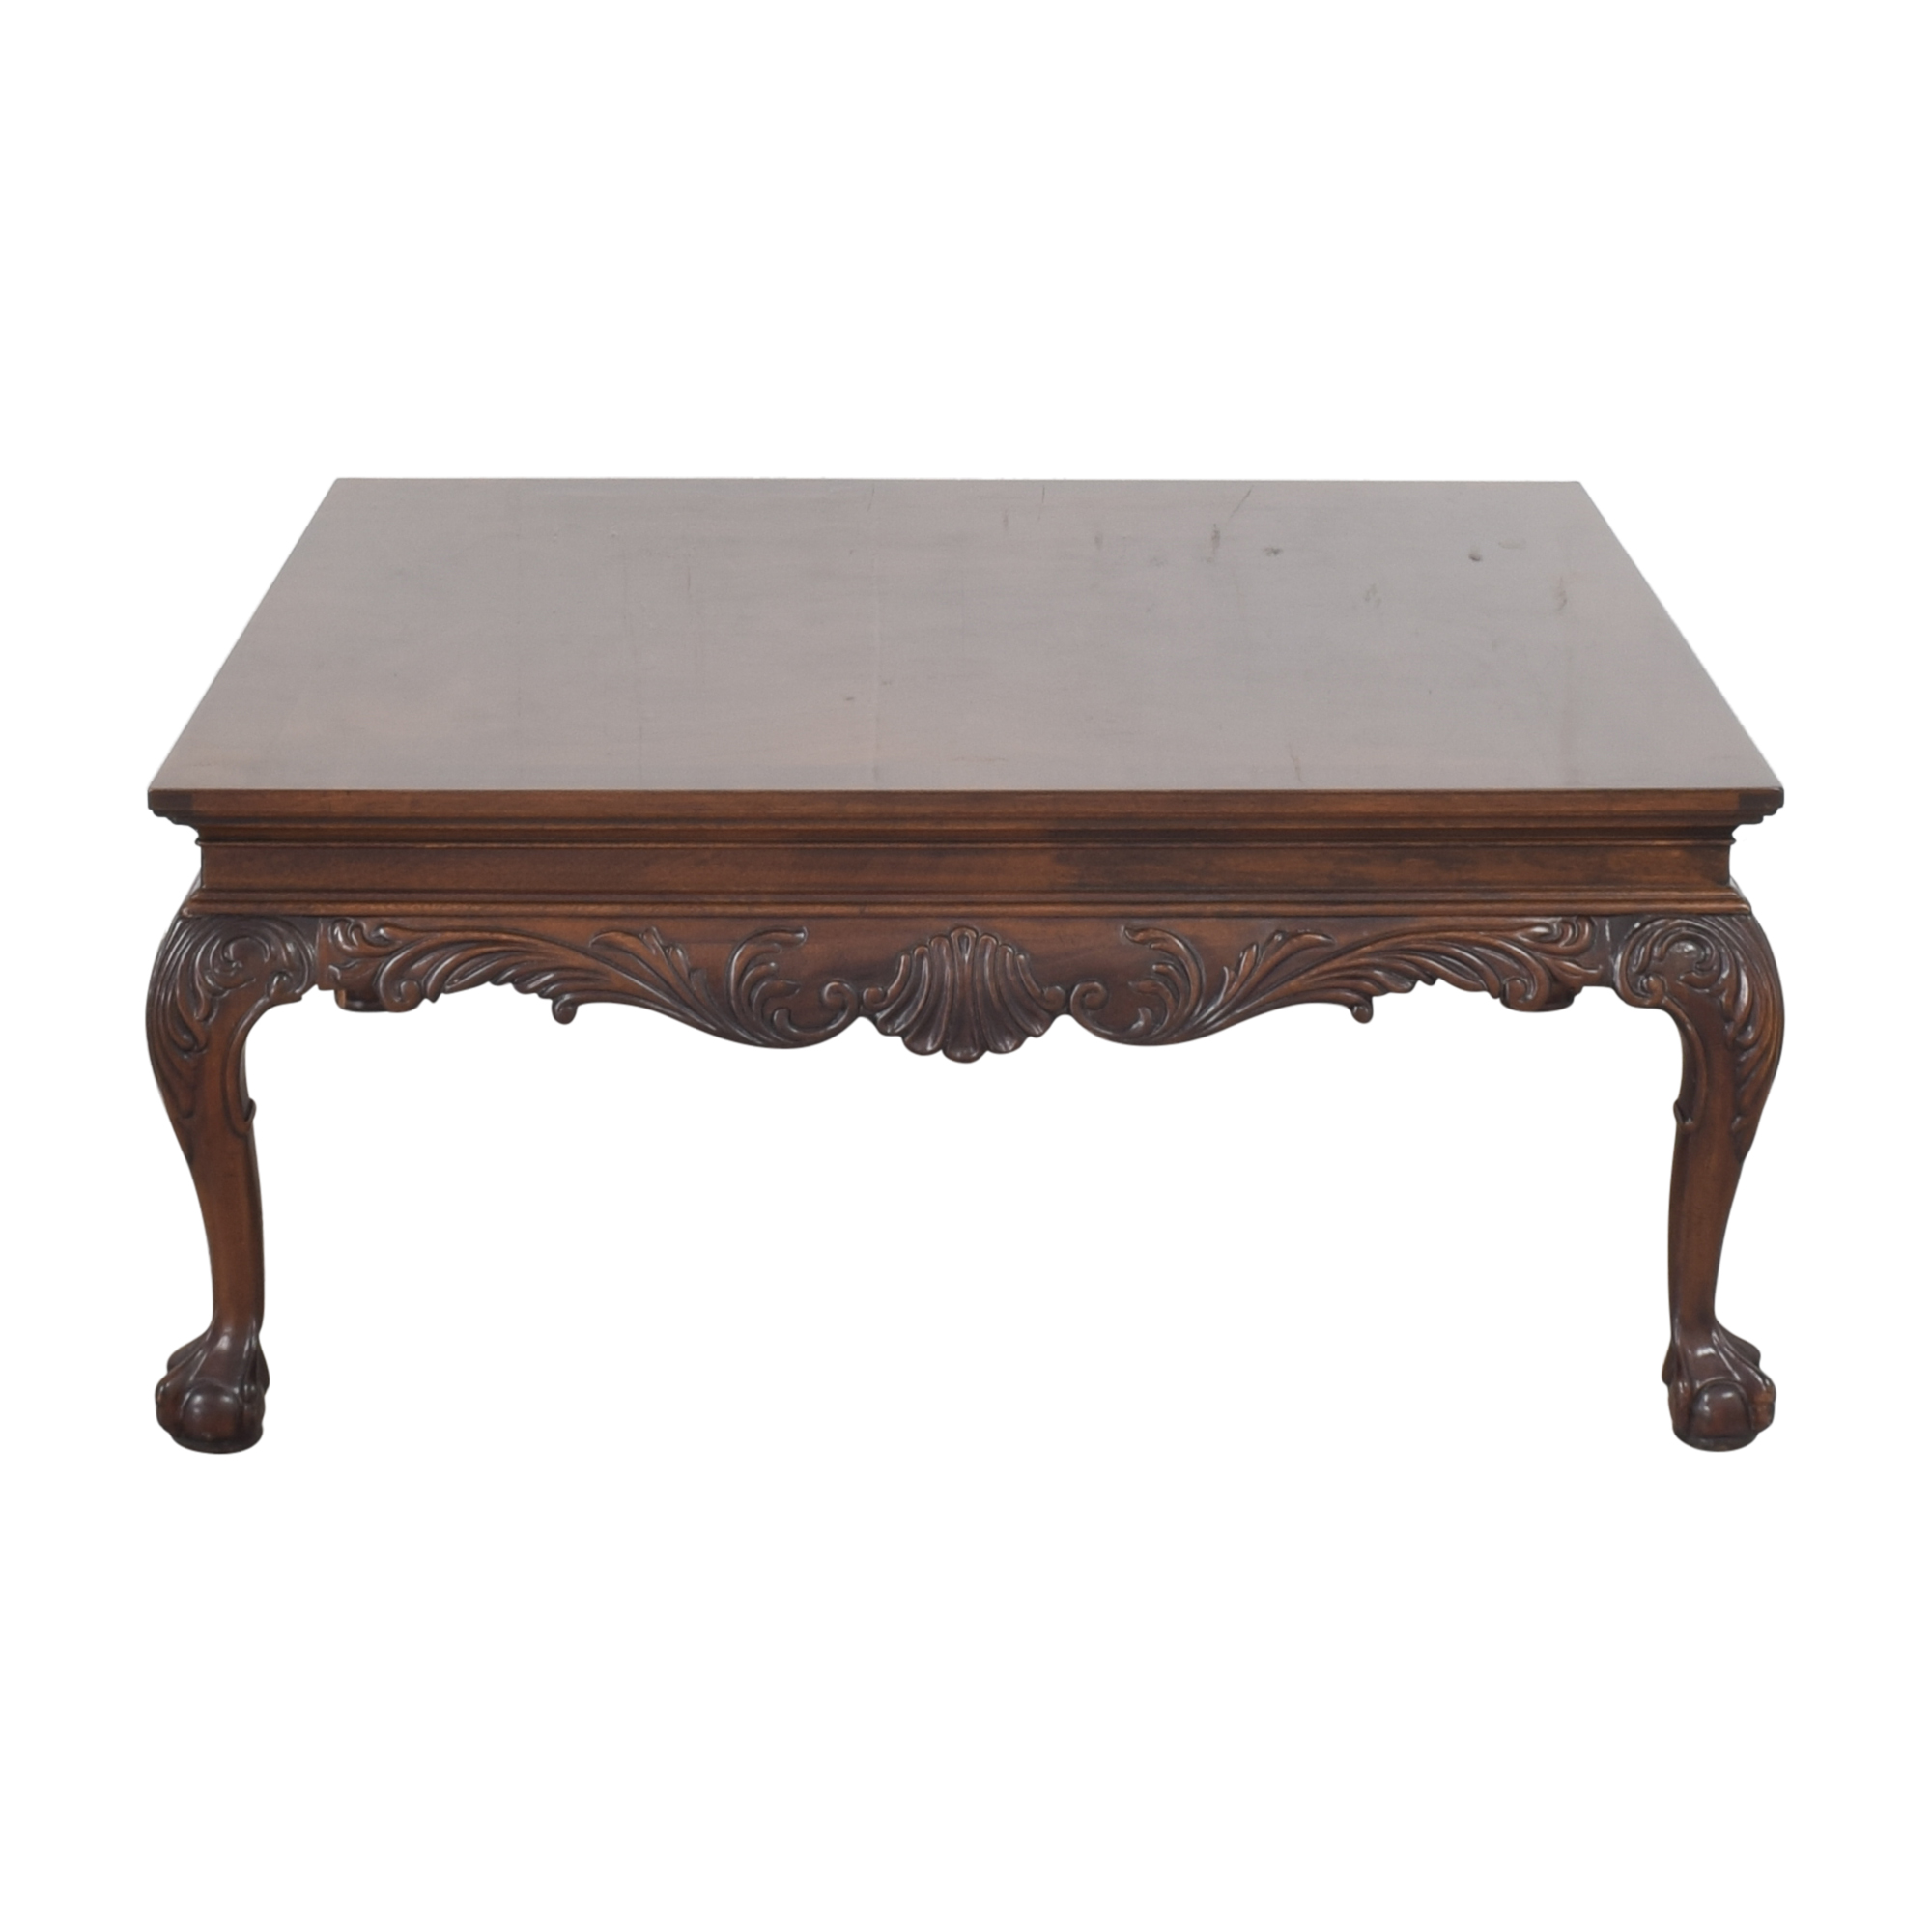 Heritage Heritage Heirloom Square Coffee Table